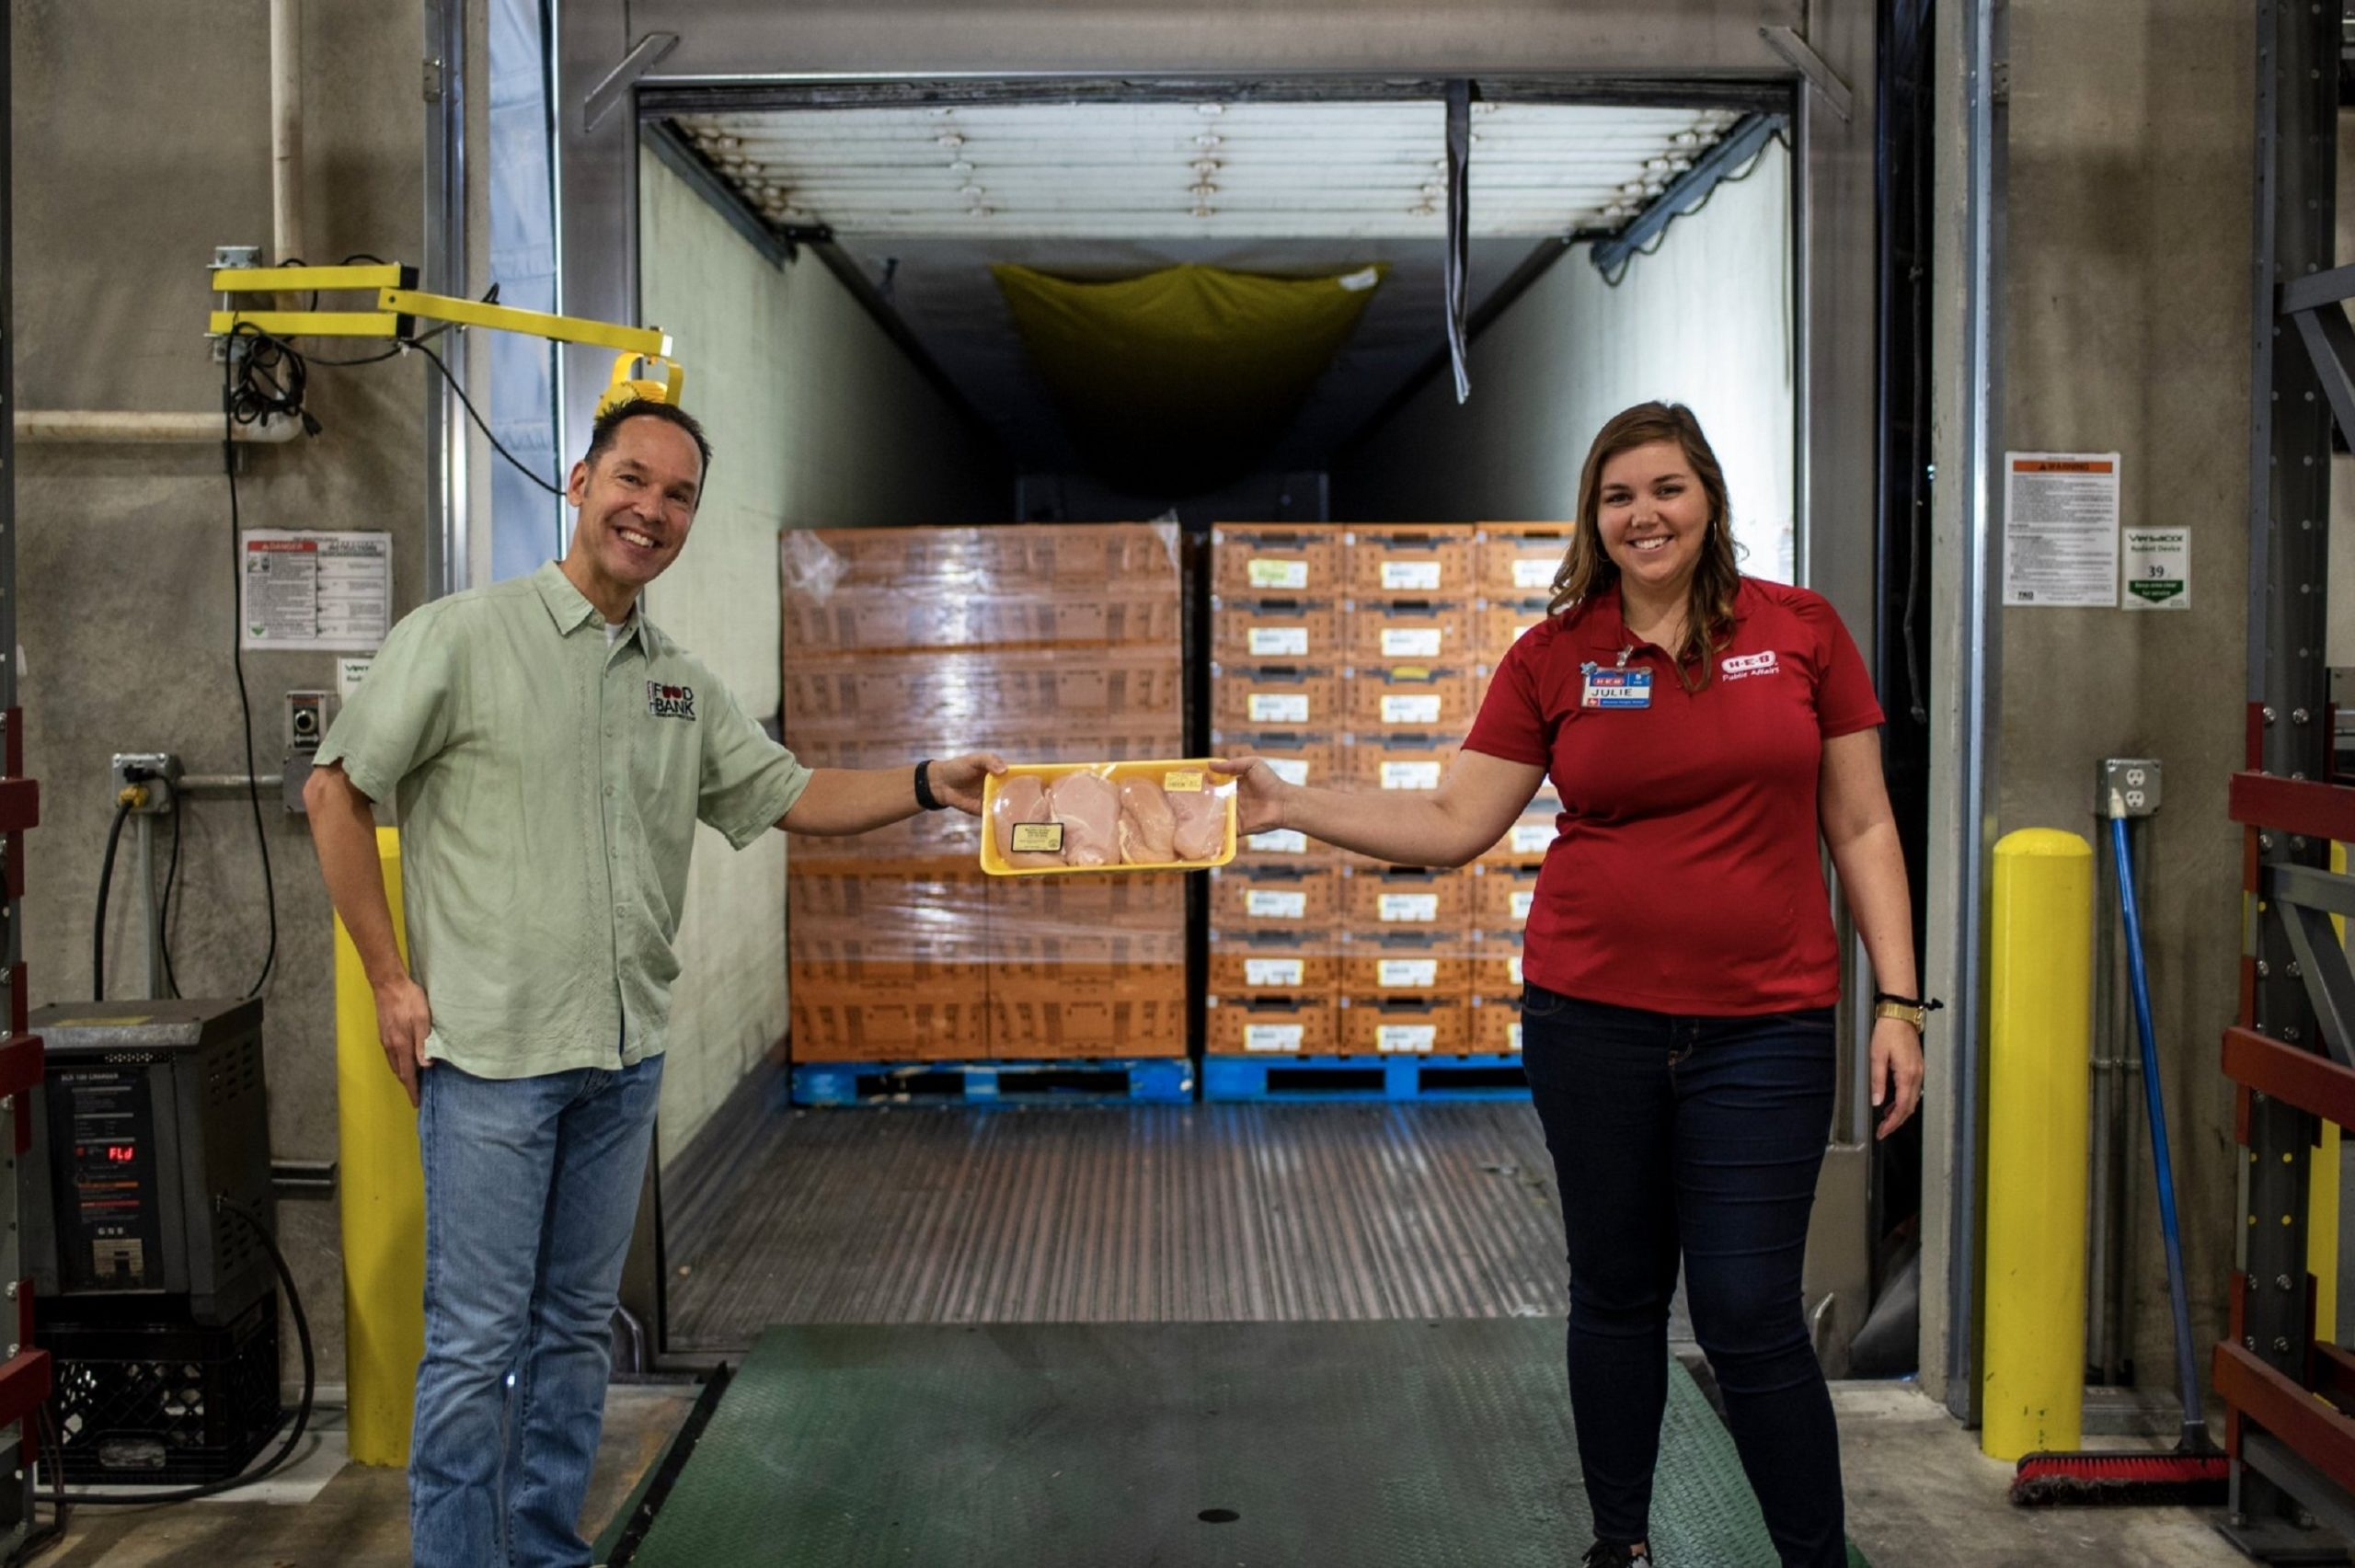 H-E-B provides more support to Texas food banks - H-E-B Newsroom